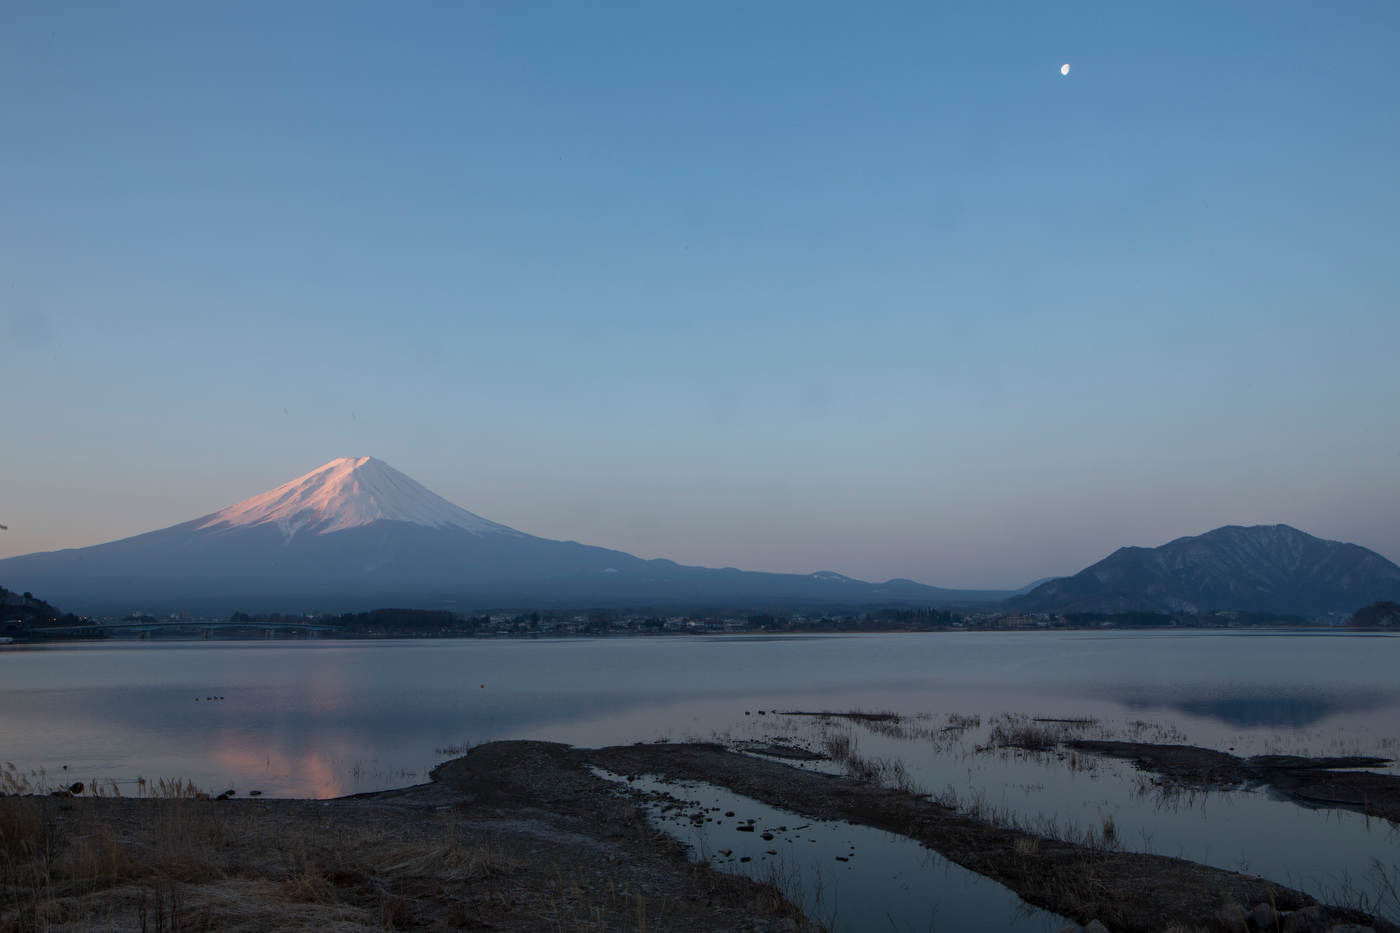 Mt. Fuji reflects in the waters of Lake Kawaguchiko at sunrise.